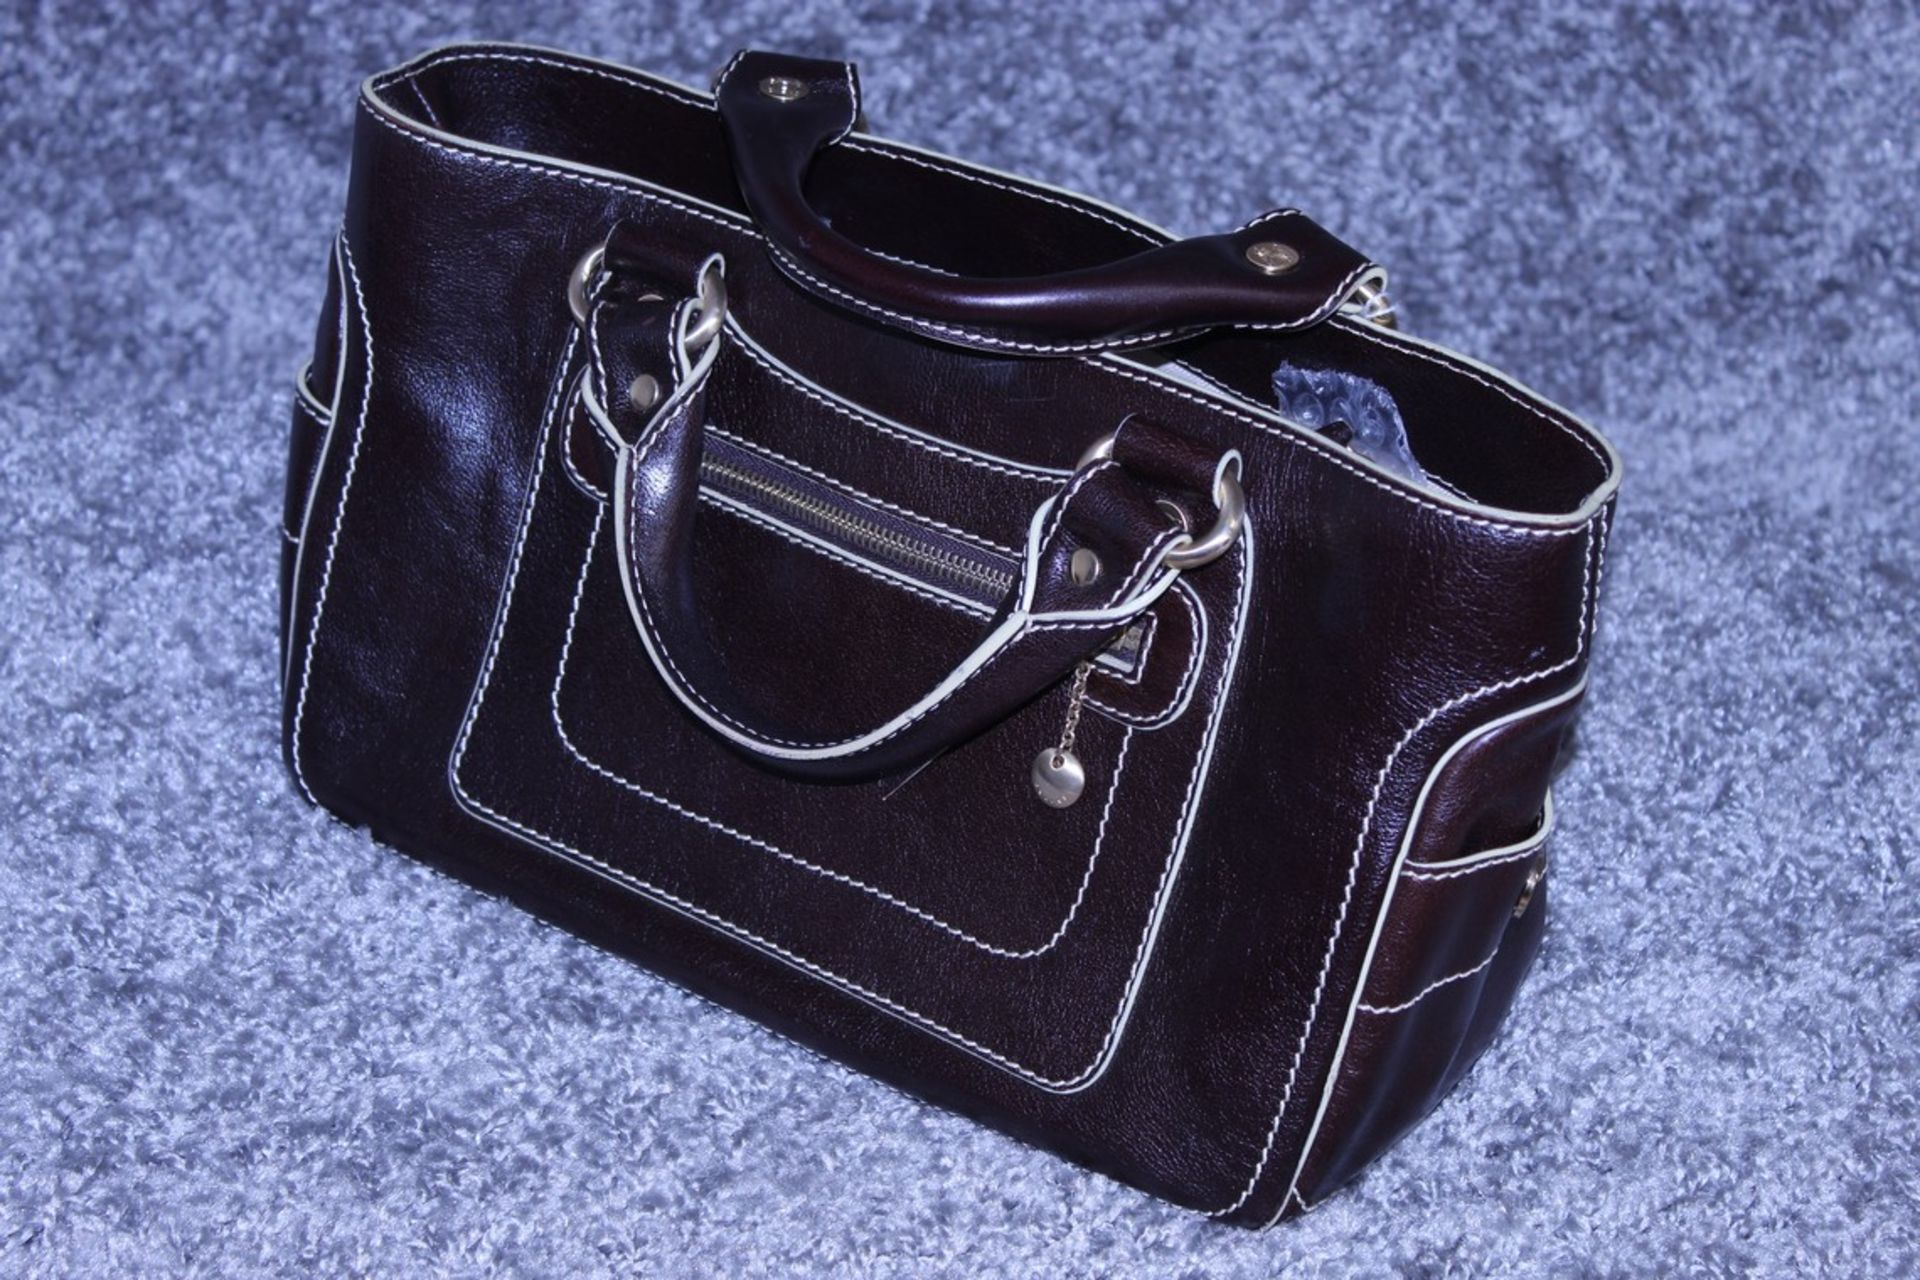 RRP £1,000 Celine Boogie Handbag, Brown Calf Small Grained Leather, Leather Handles, 22X30X13Cm ( - Image 4 of 5